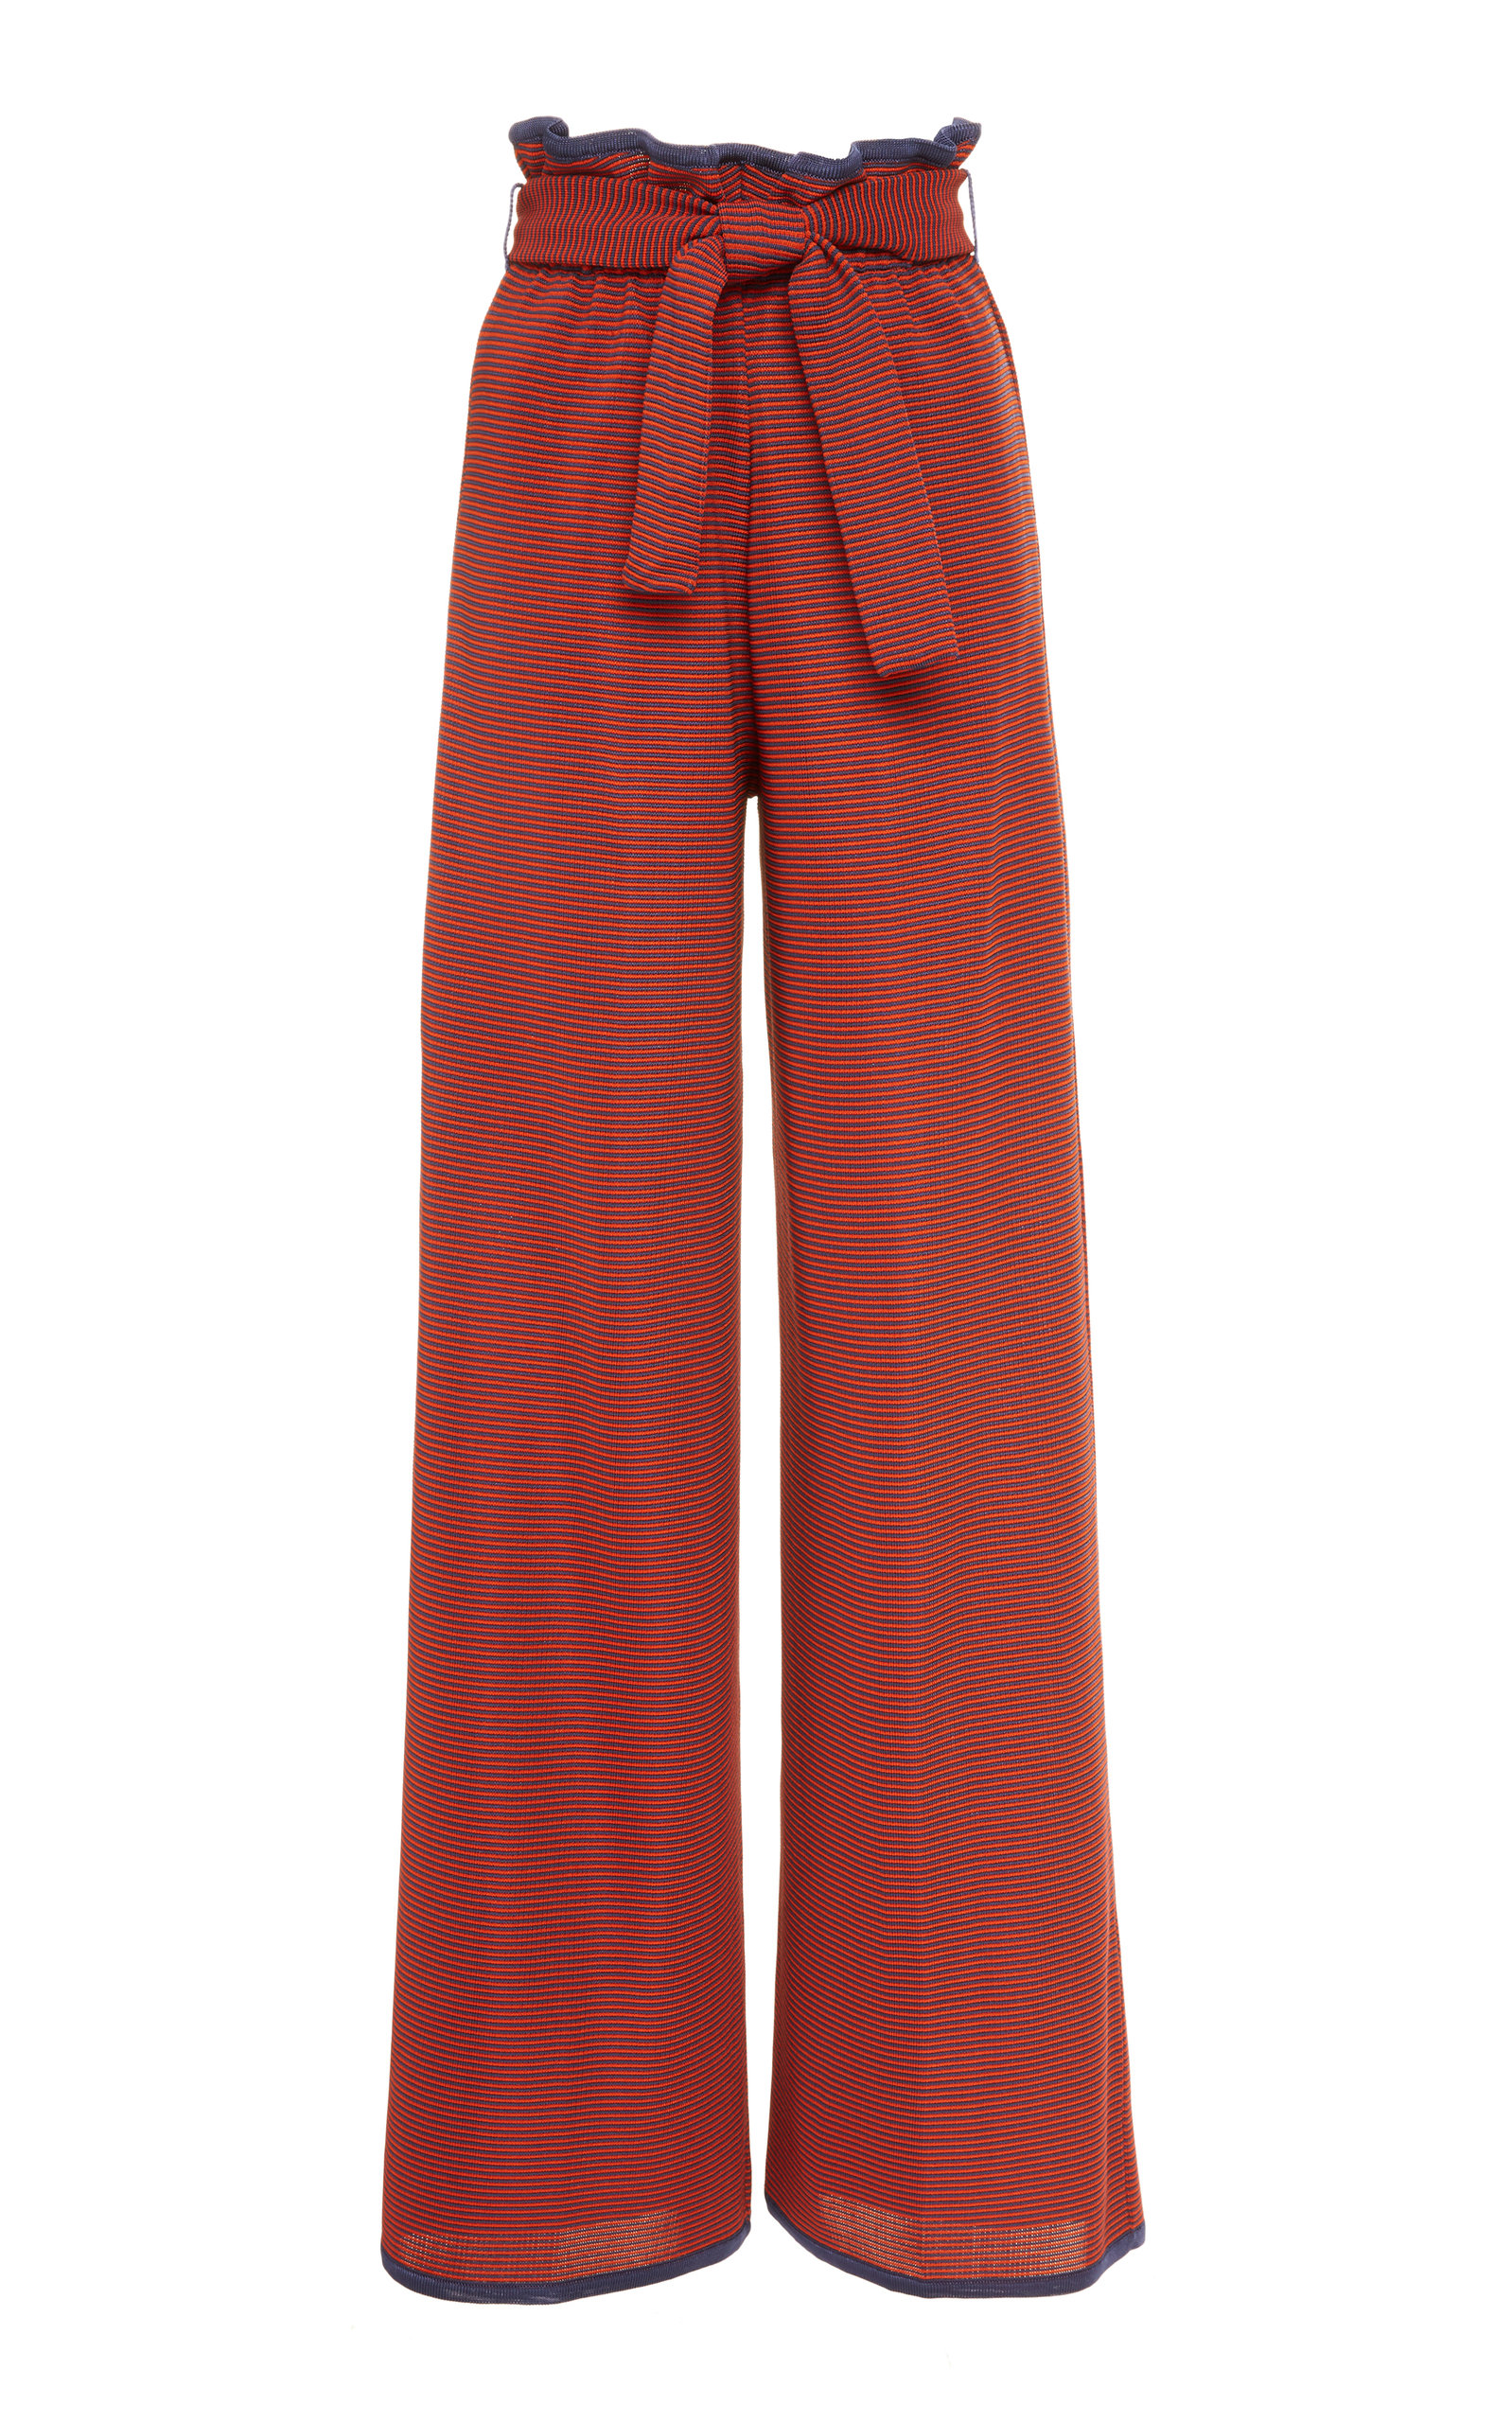 PEPA POMBO Violet Belted Pants in Burgundy